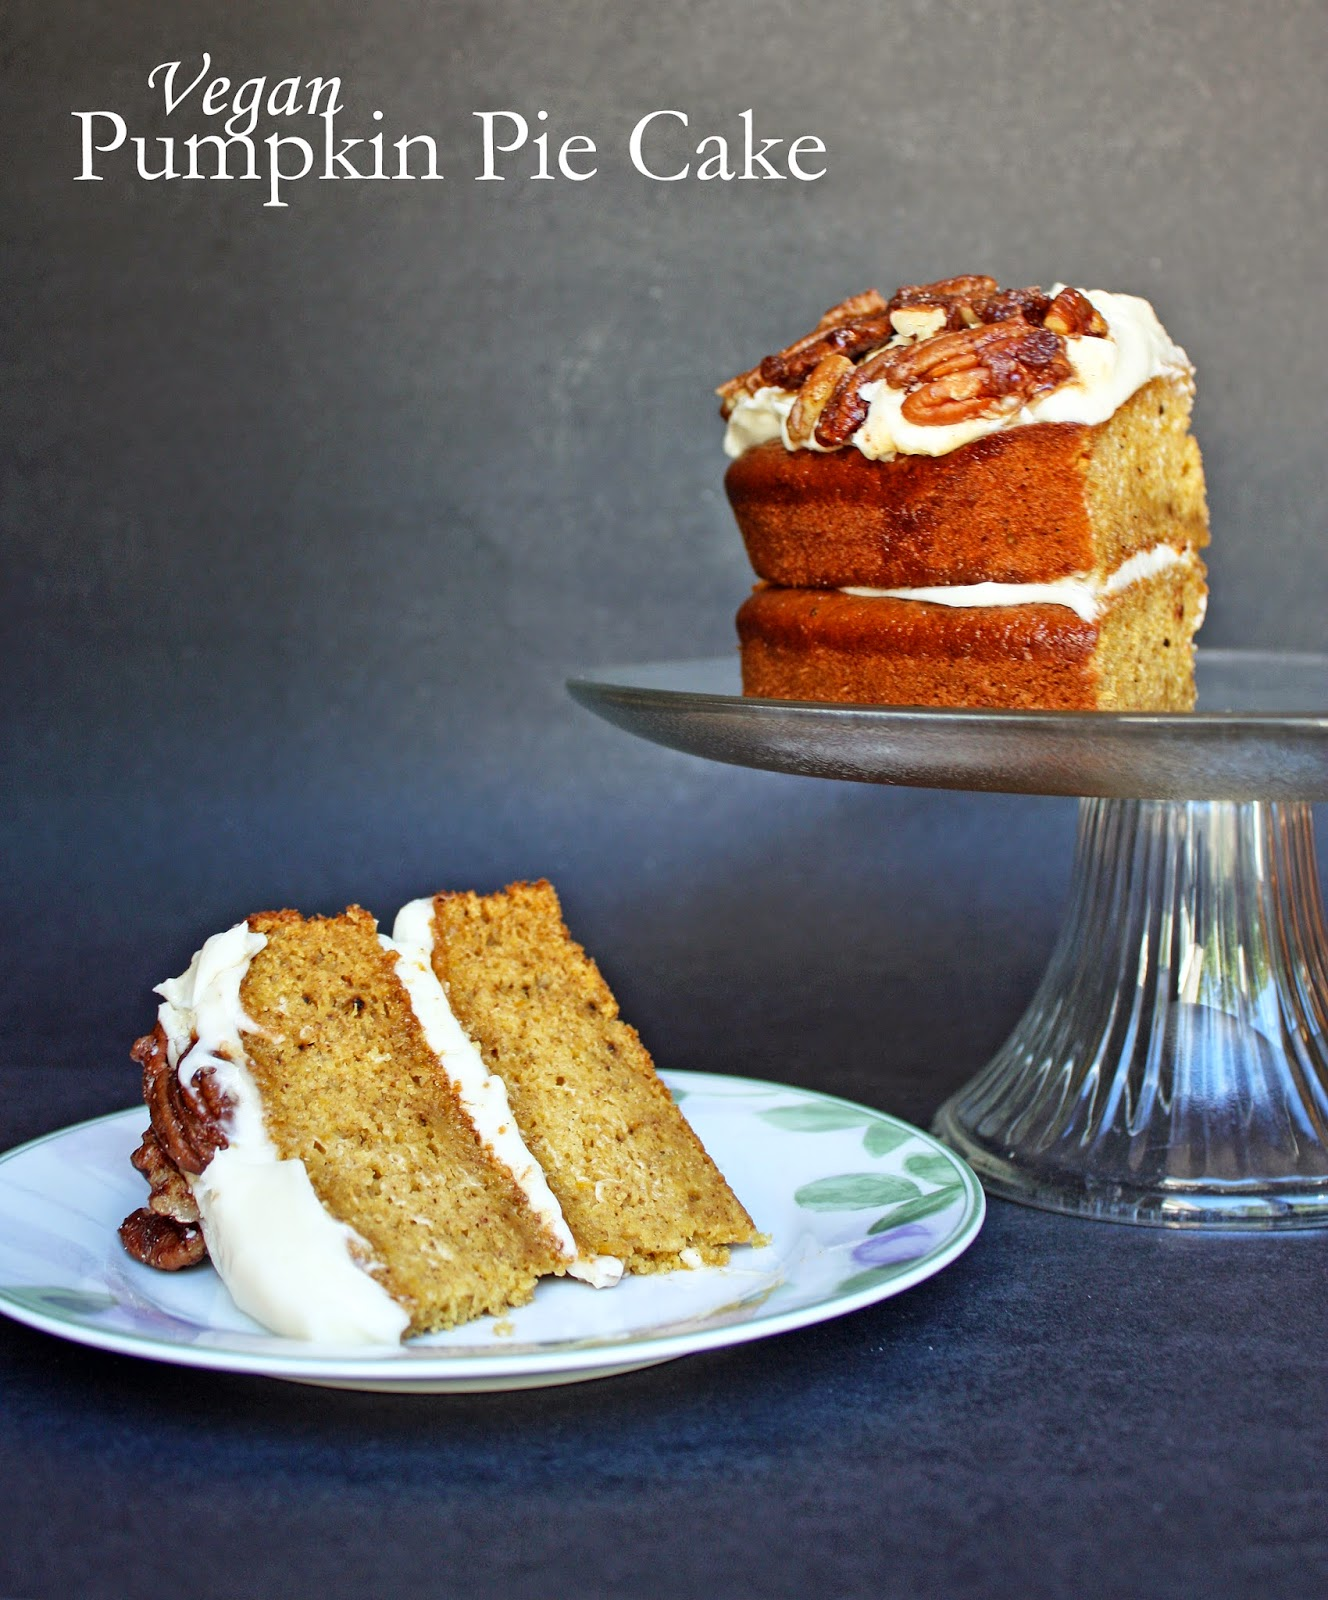 pumpkin pie cake with cream cheese frosting and candied pecans